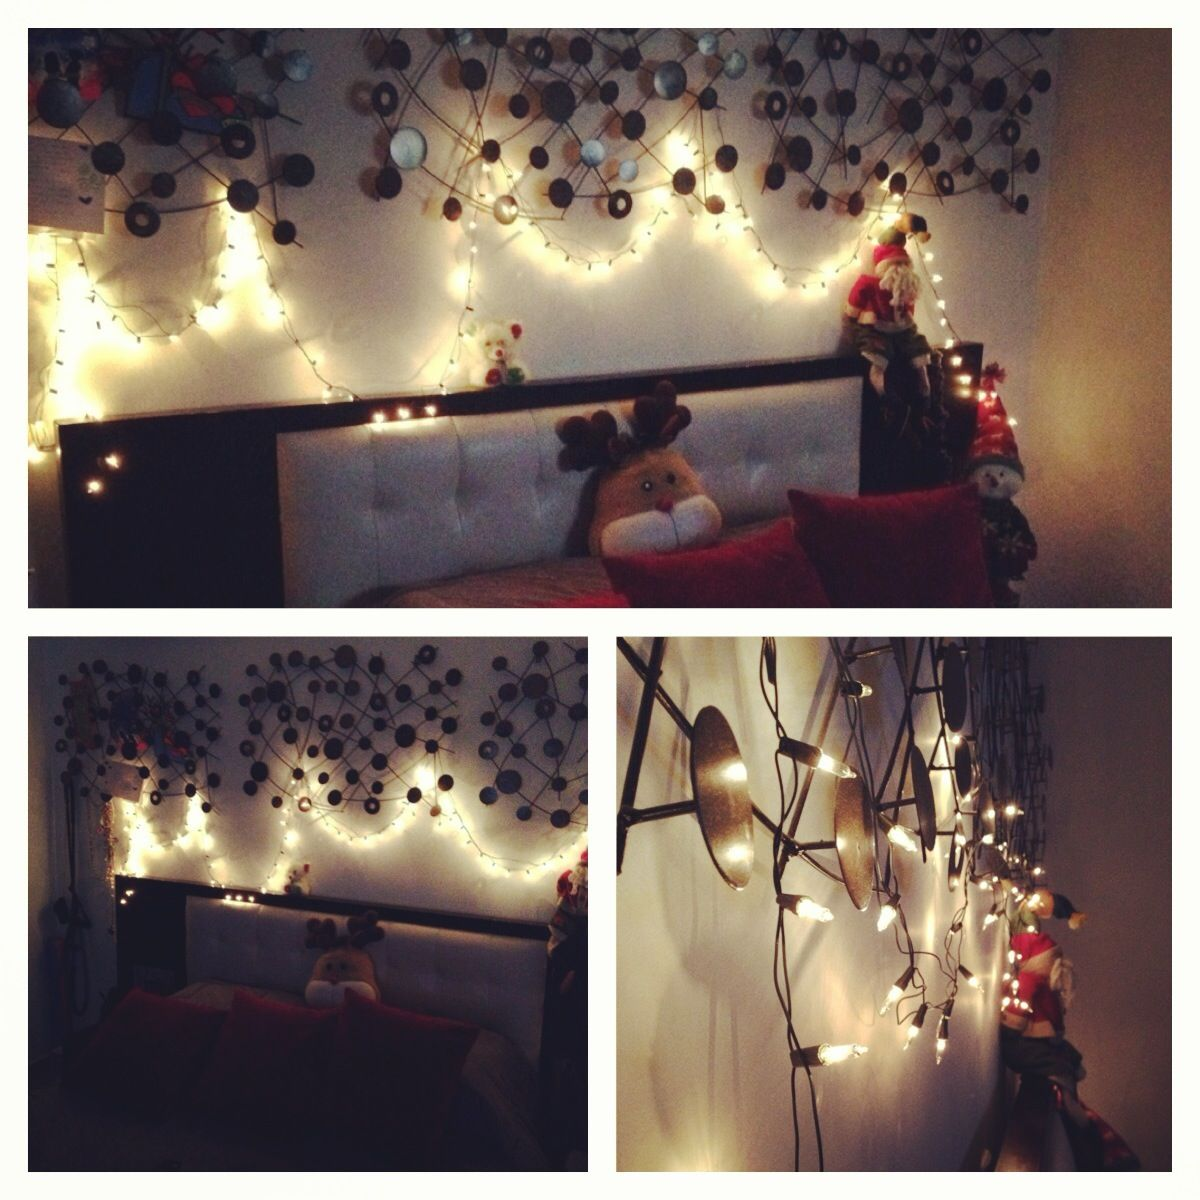 Christmas lights in bedroom pinterest - Christmas Lights Bedroom